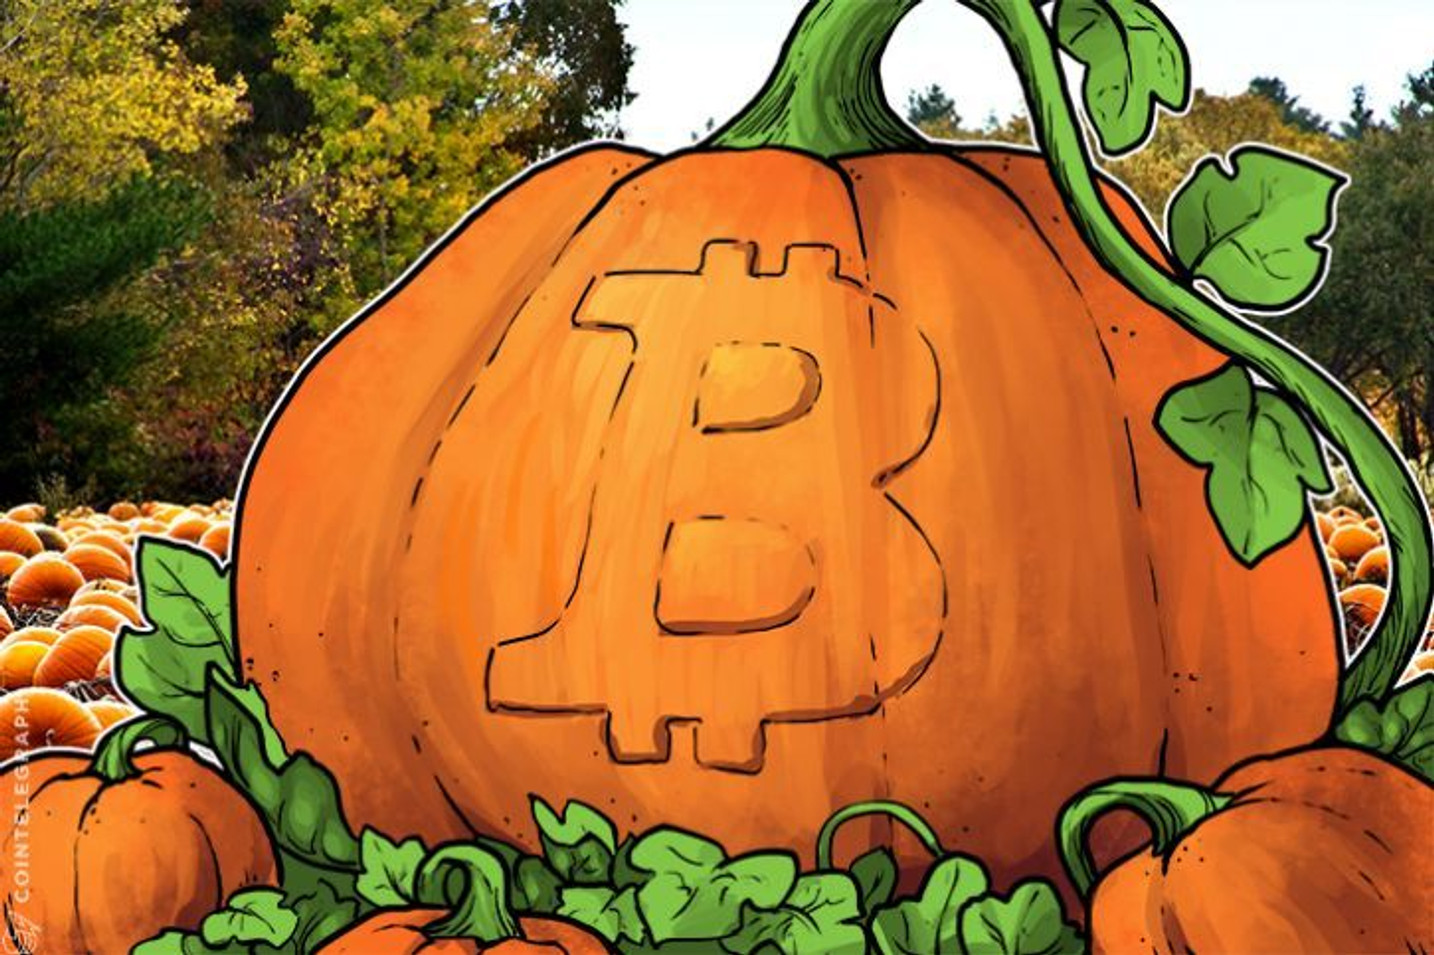 Bitcoin Price at $10,000 For GBTC Shares, Trading at 120 Percent Premium